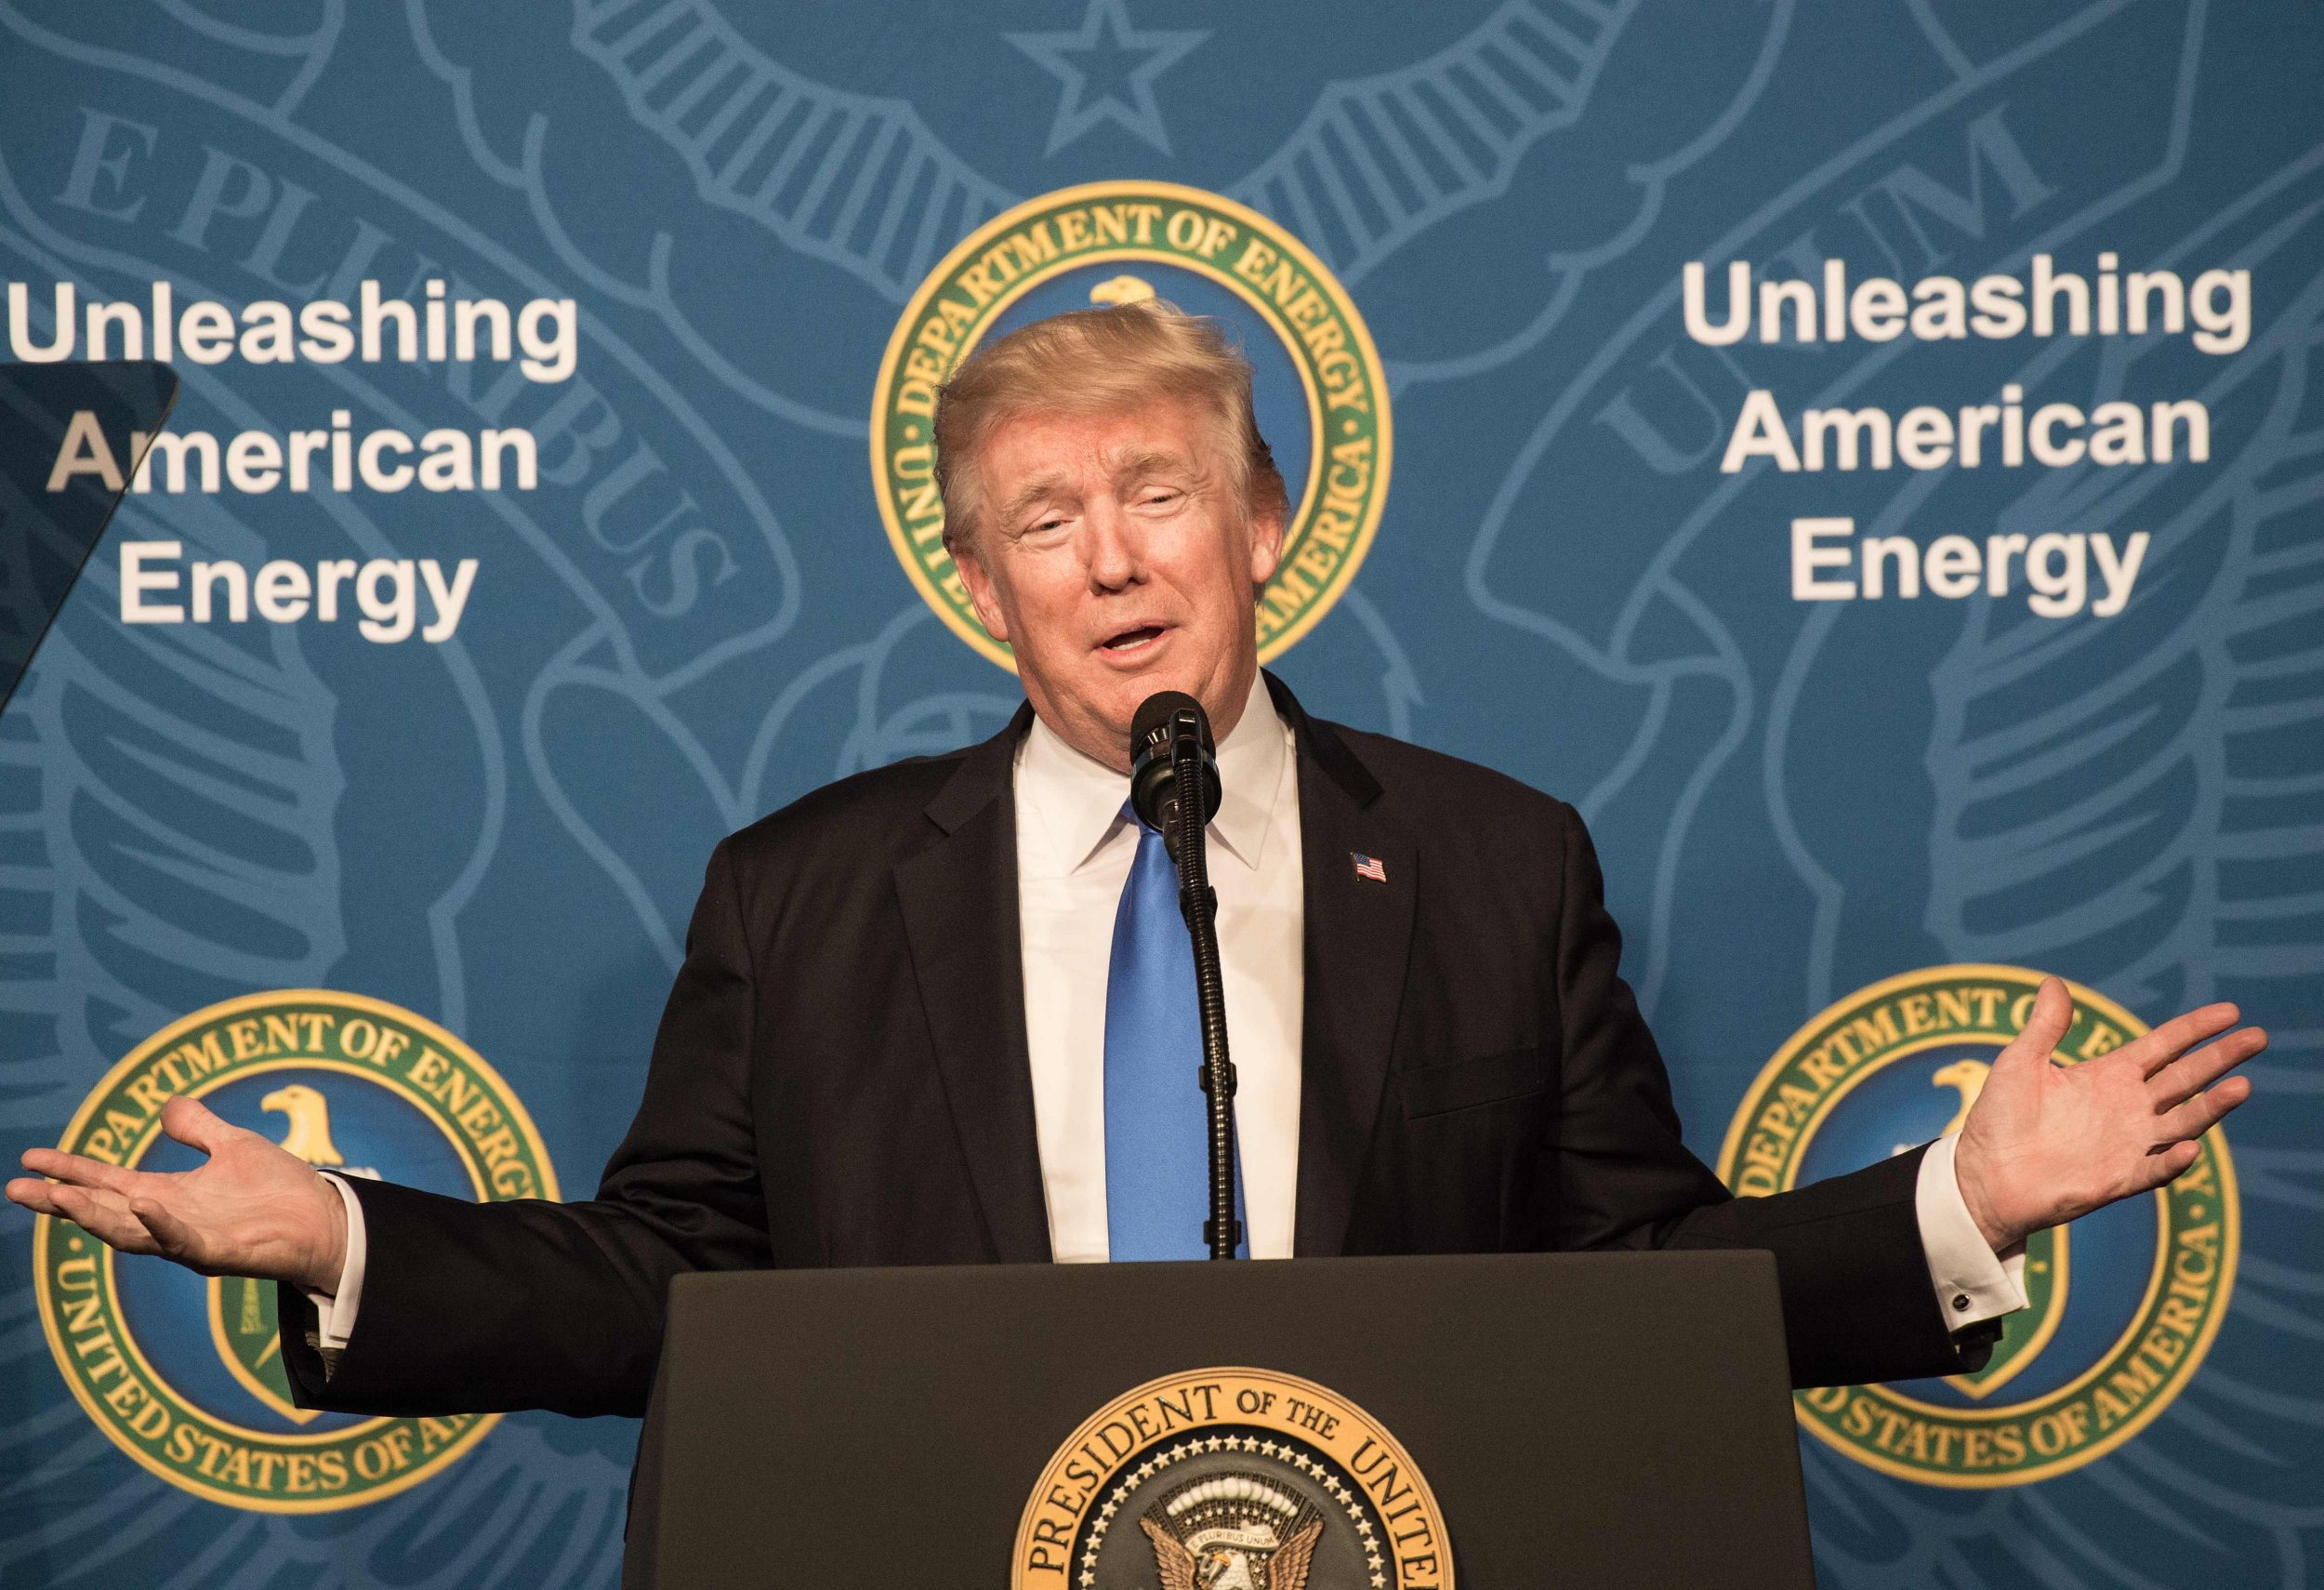 Donald Trump Talks Energy Policy